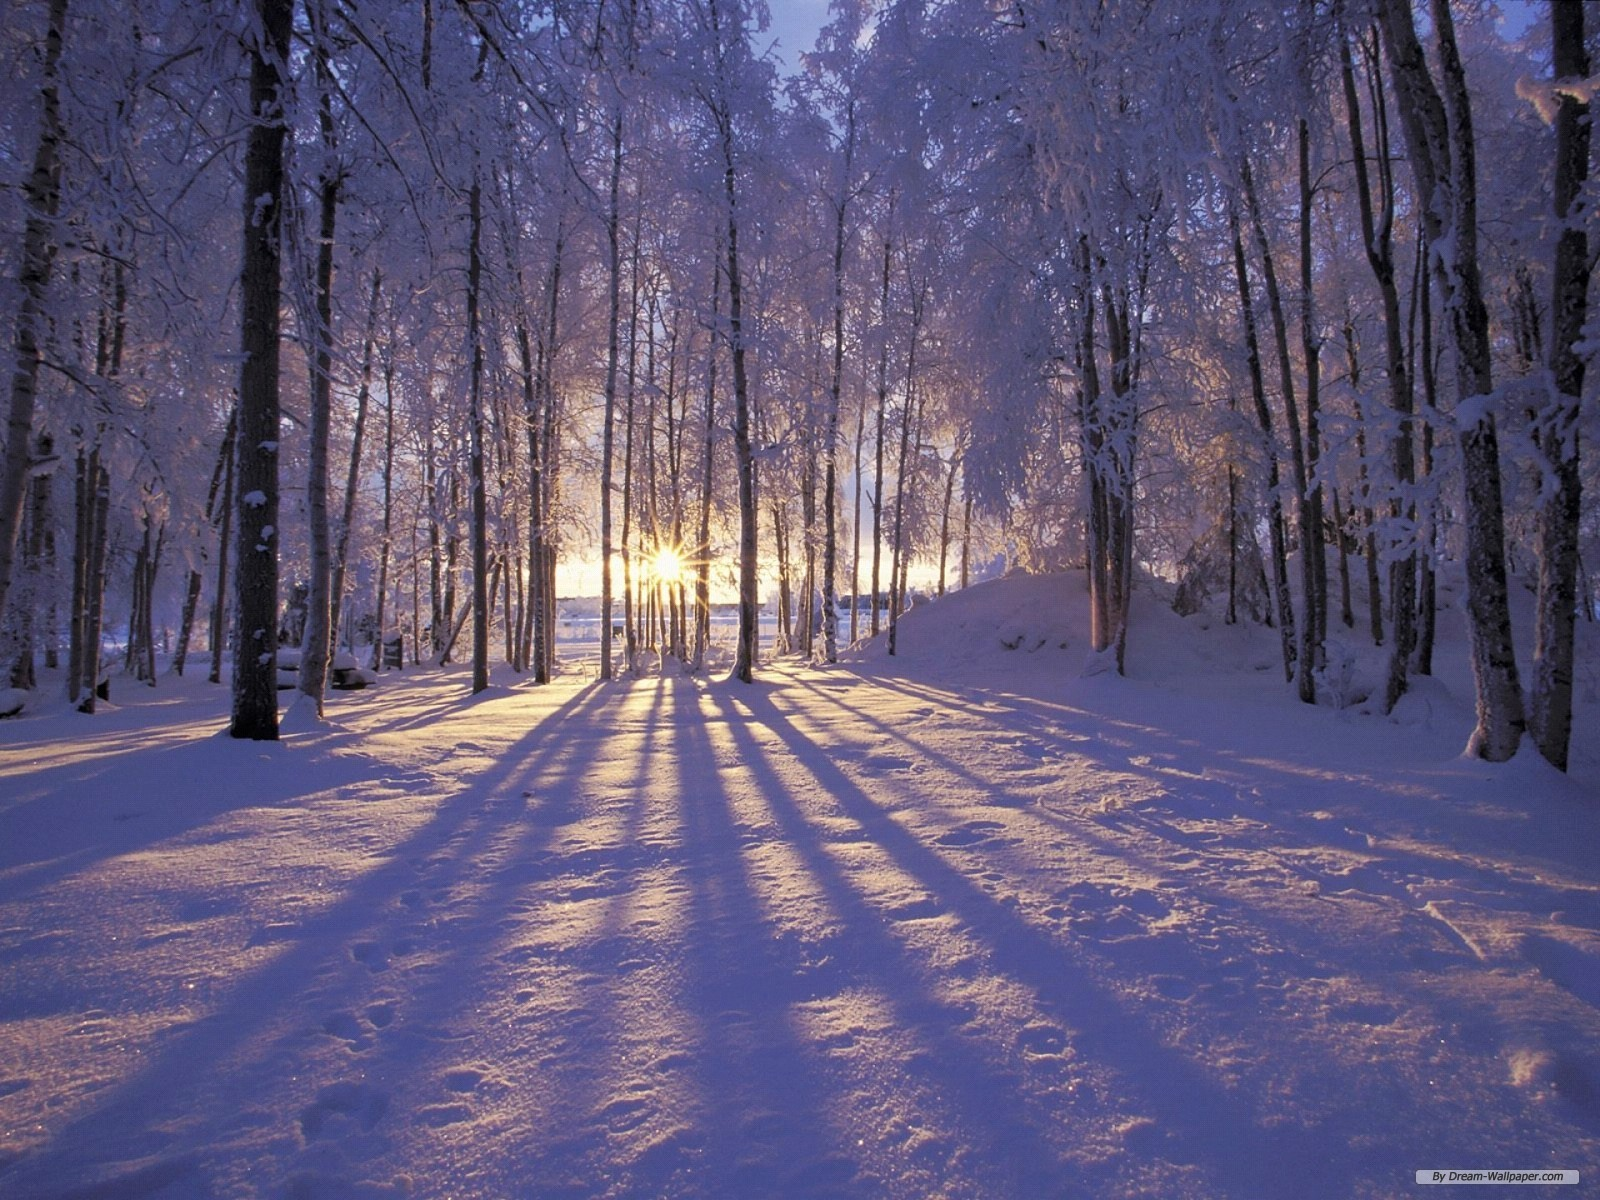 screensavers Wallpaper Nature wallpaper Winter Wonderland 1 1600x1200